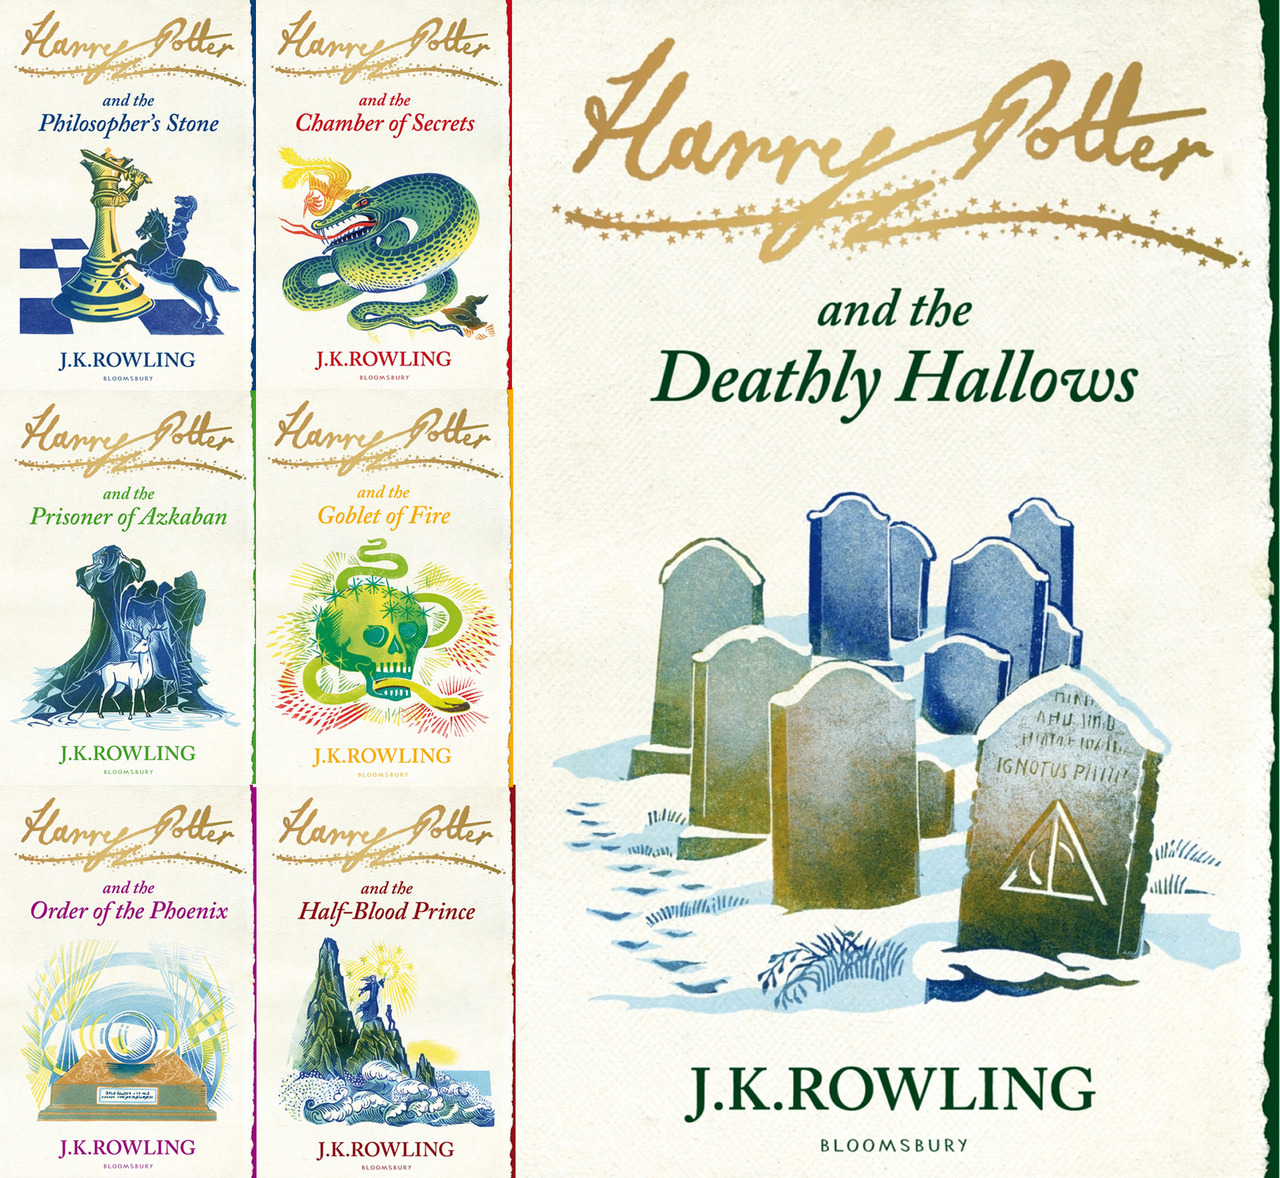 Are The New Scholastic Harry Potter Covers Worse Than The